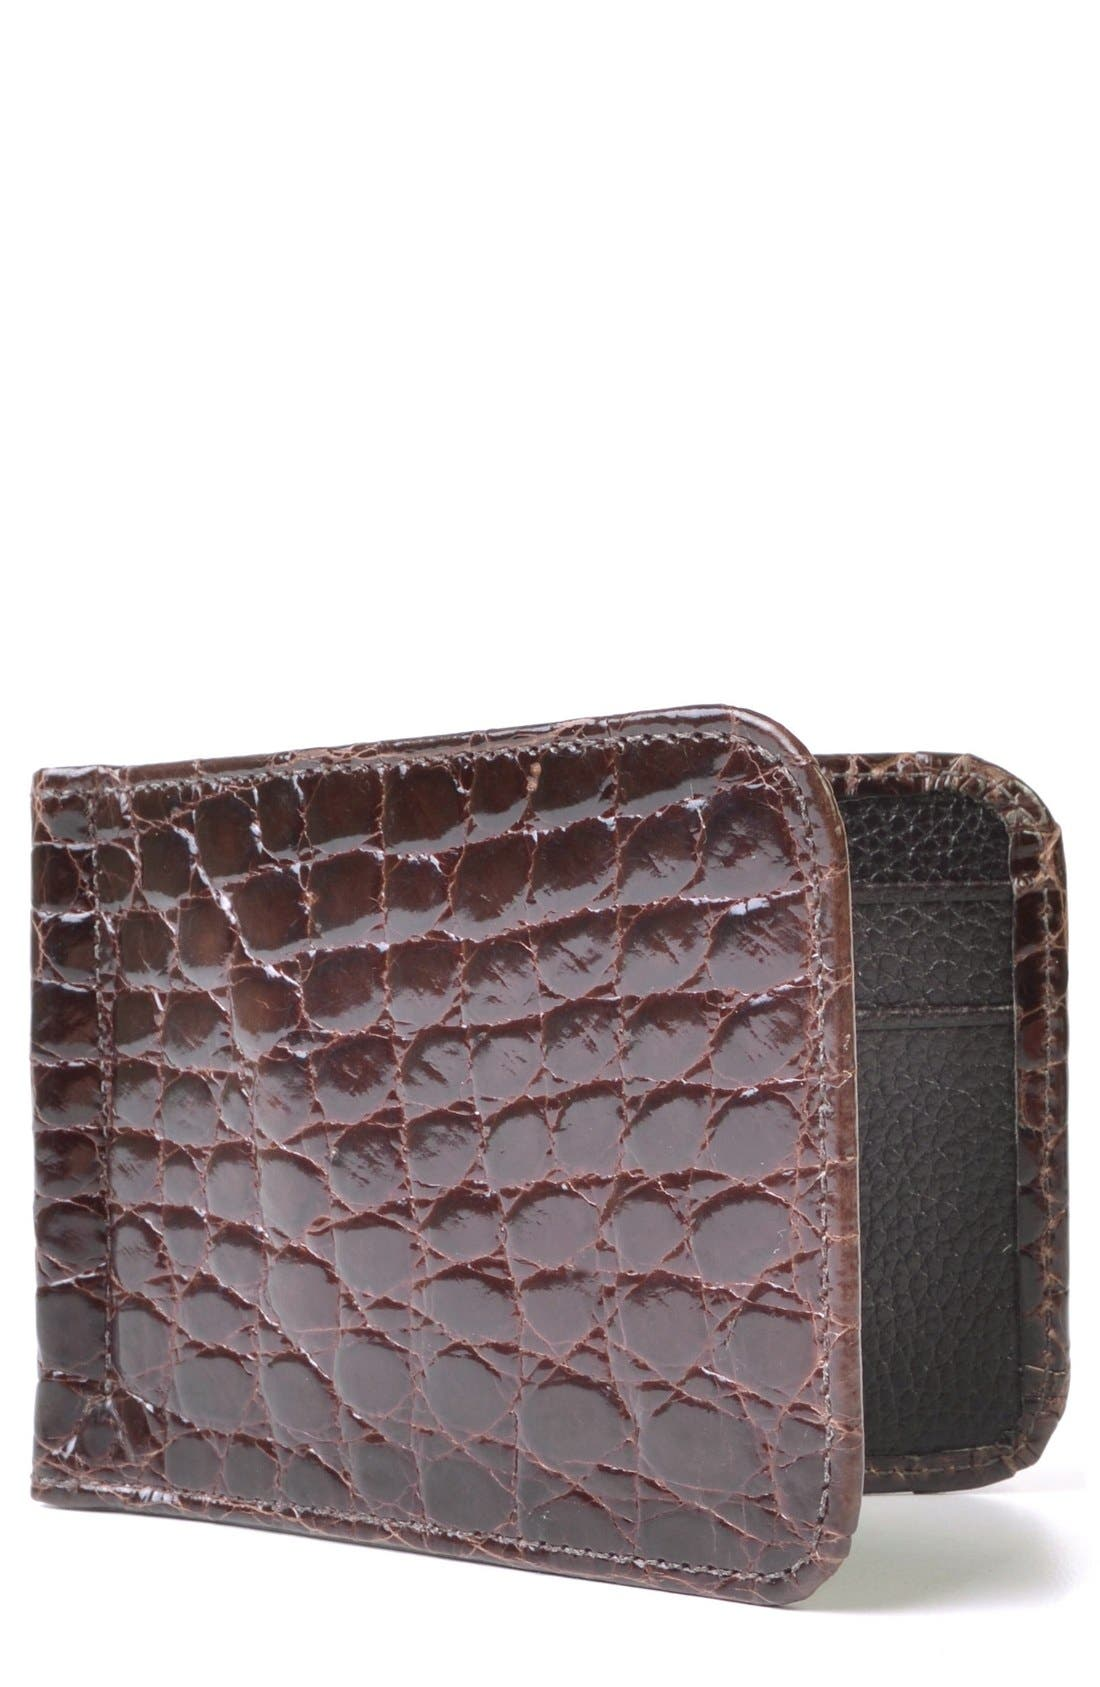 'Joseph' Genuine American Alligator Leather Money Clip Wallet,                         Main,                         color, Brown